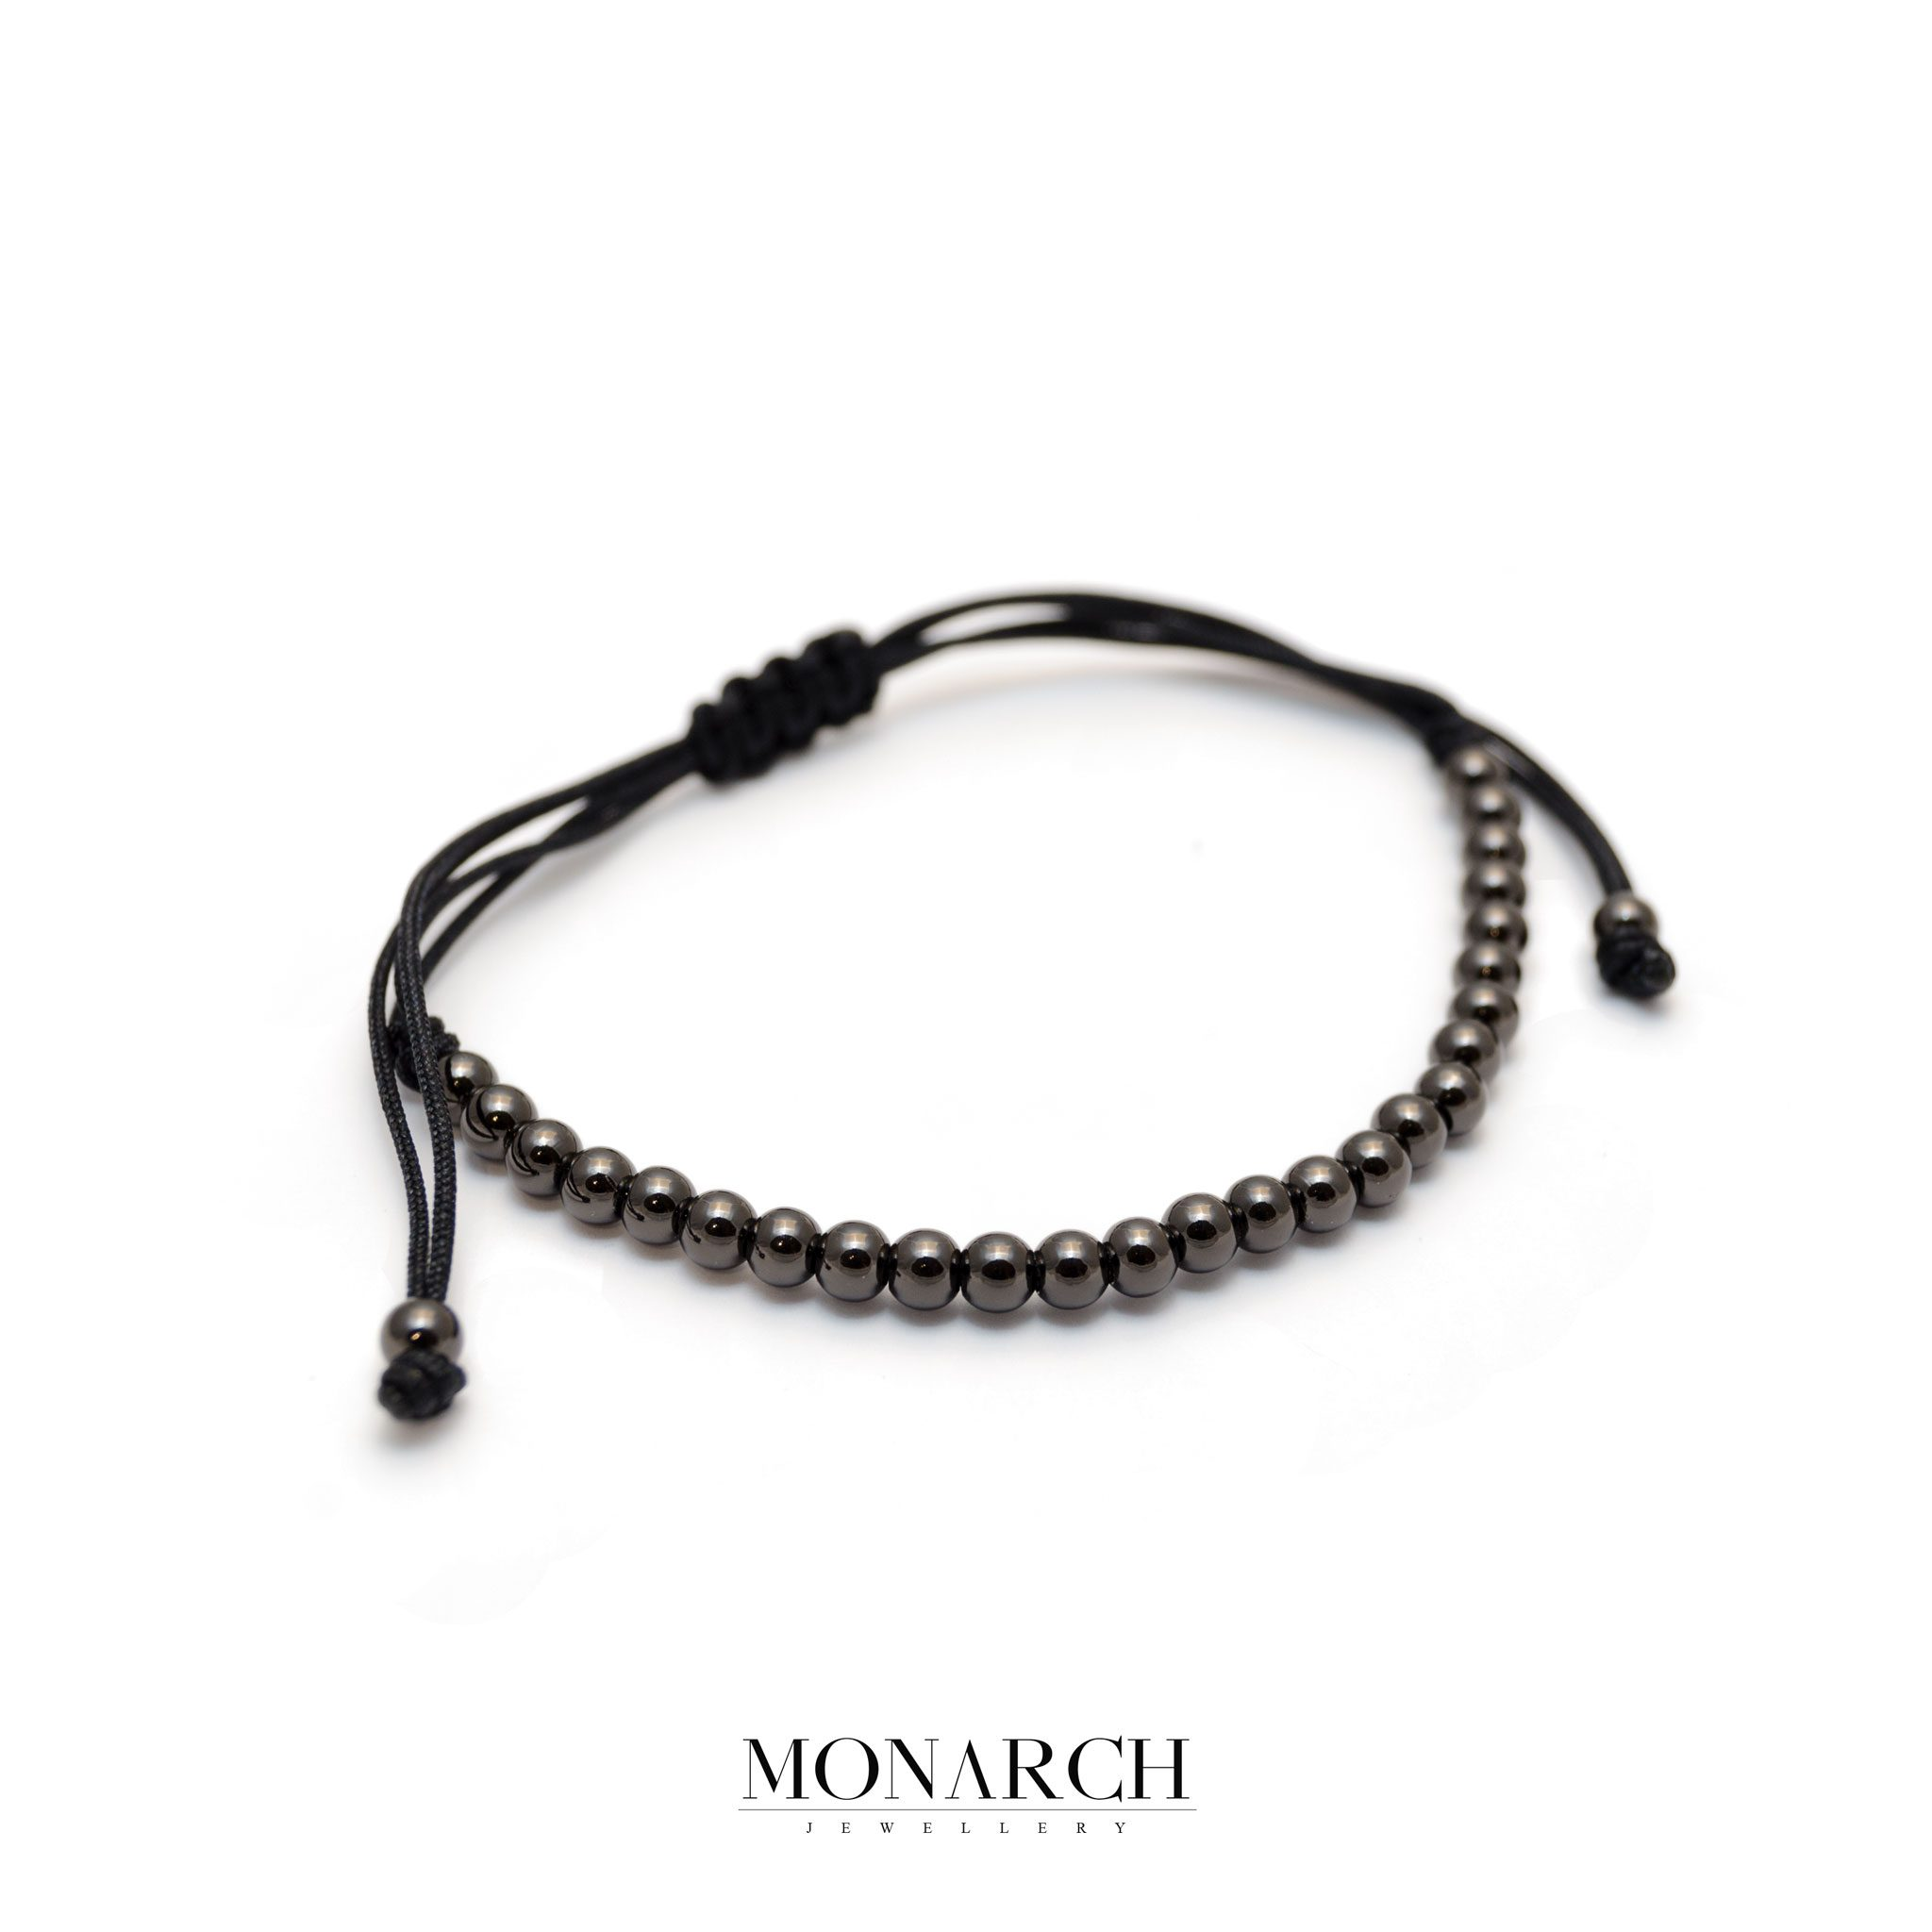 Monarch Jewellery Black Spectra Zircon Macrame Bracelet